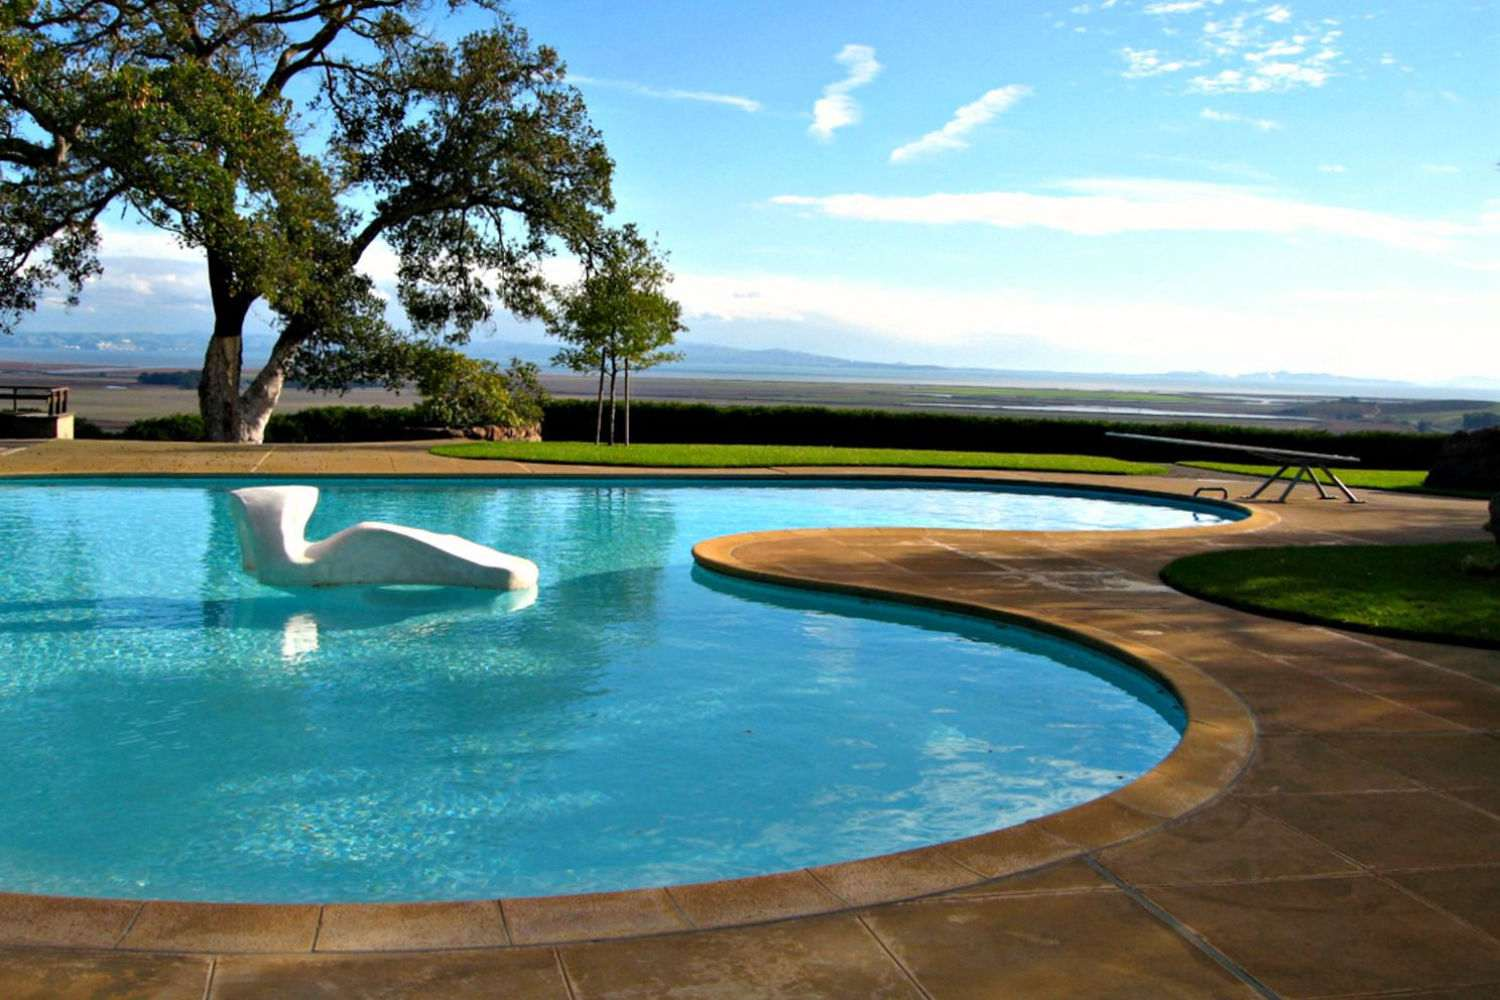 modernist donnell pool sonoma